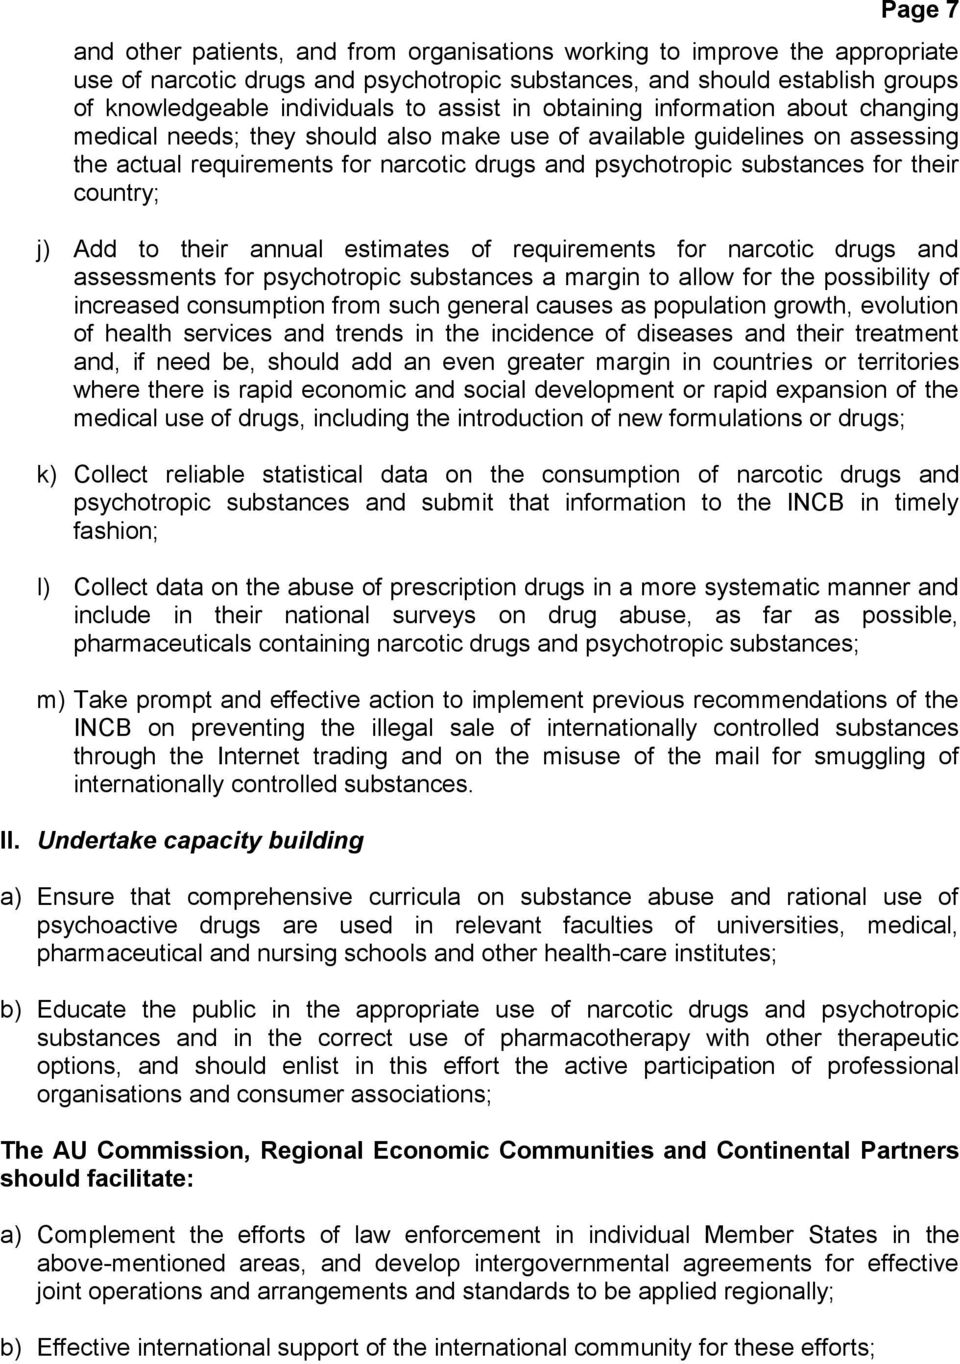 their country; j) Add to their annual estimates of requirements for narcotic drugs and assessments for psychotropic substances a margin to allow for the possibility of increased consumption from such